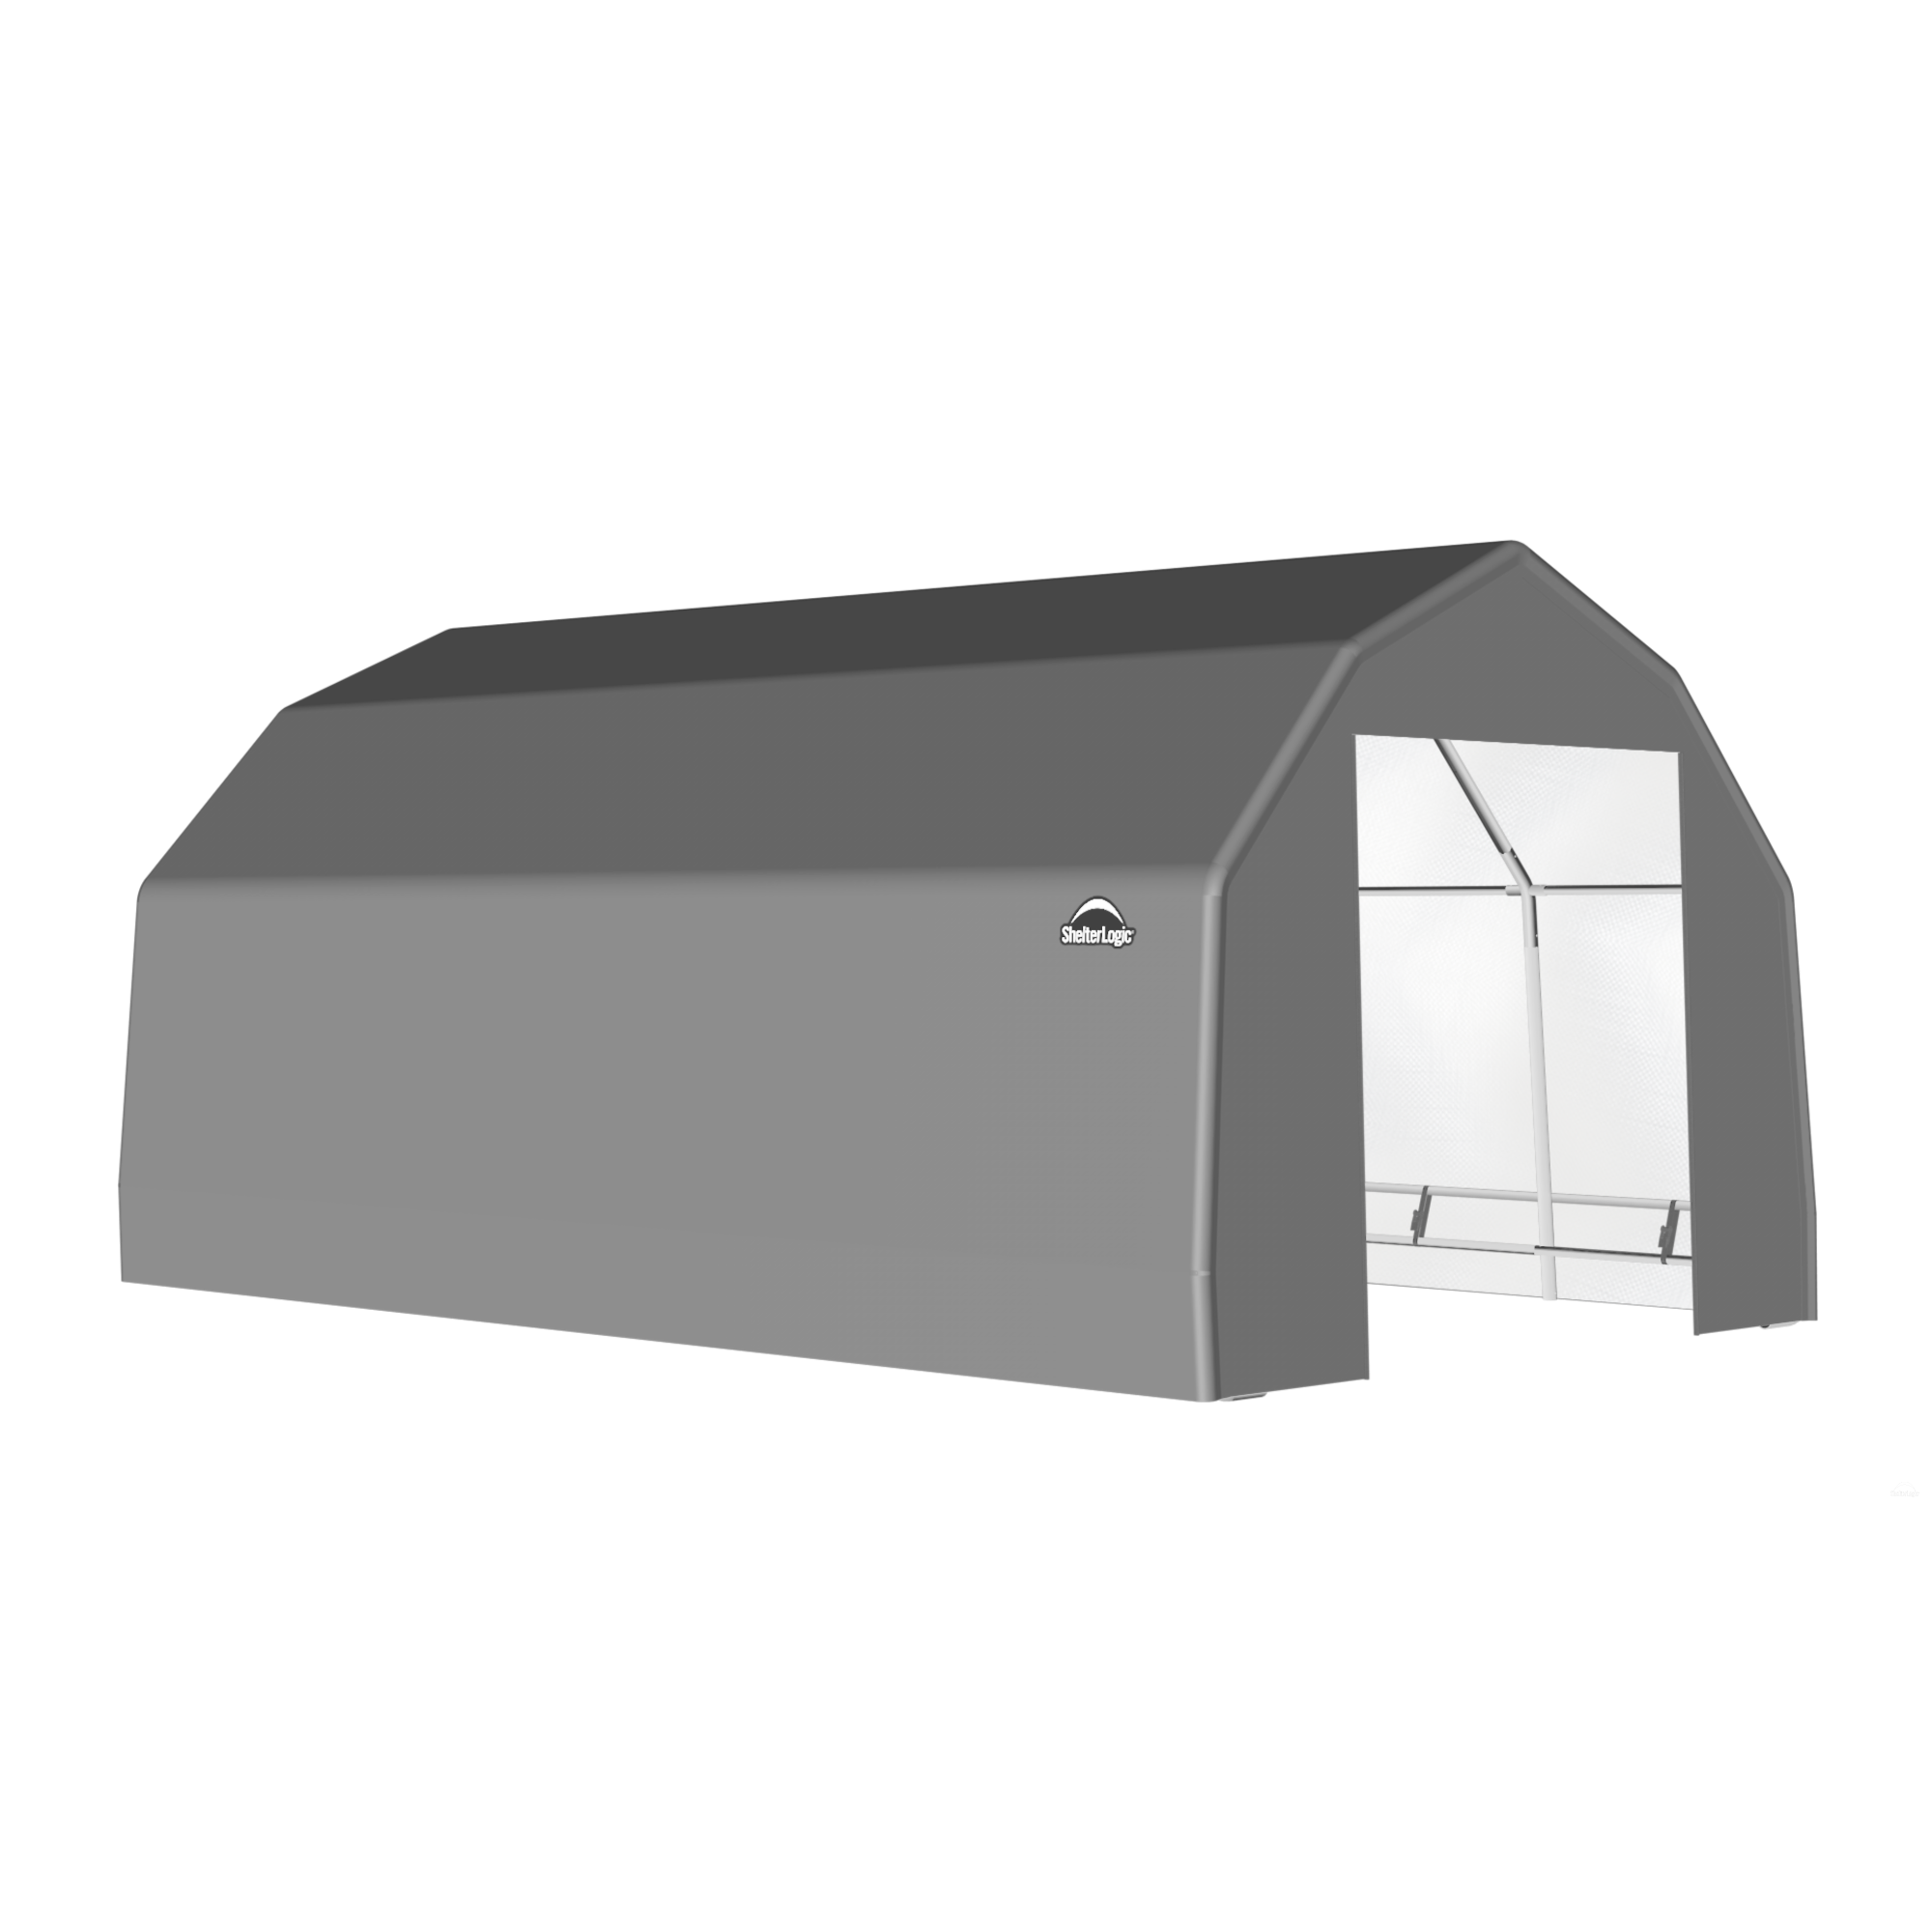 SP Barn 15X24X11 Gray 14 oz PE Shelter